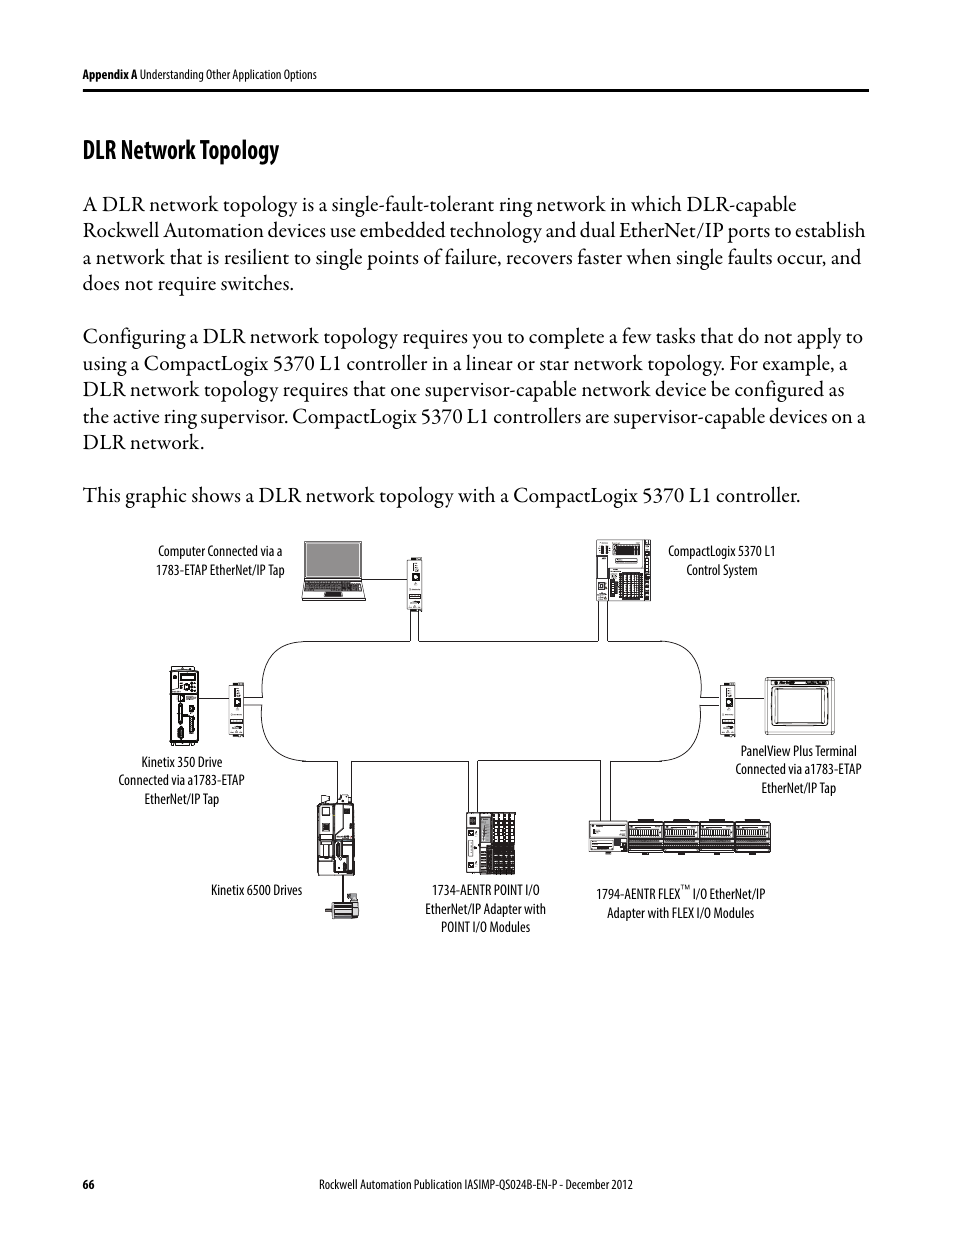 dlr network topology | rockwell automation 1769-l16er -bb1b_l18er-bb1b_l18erm-bb1b compactlogix 5370 l1 controllers system quick  start user manual | page 66